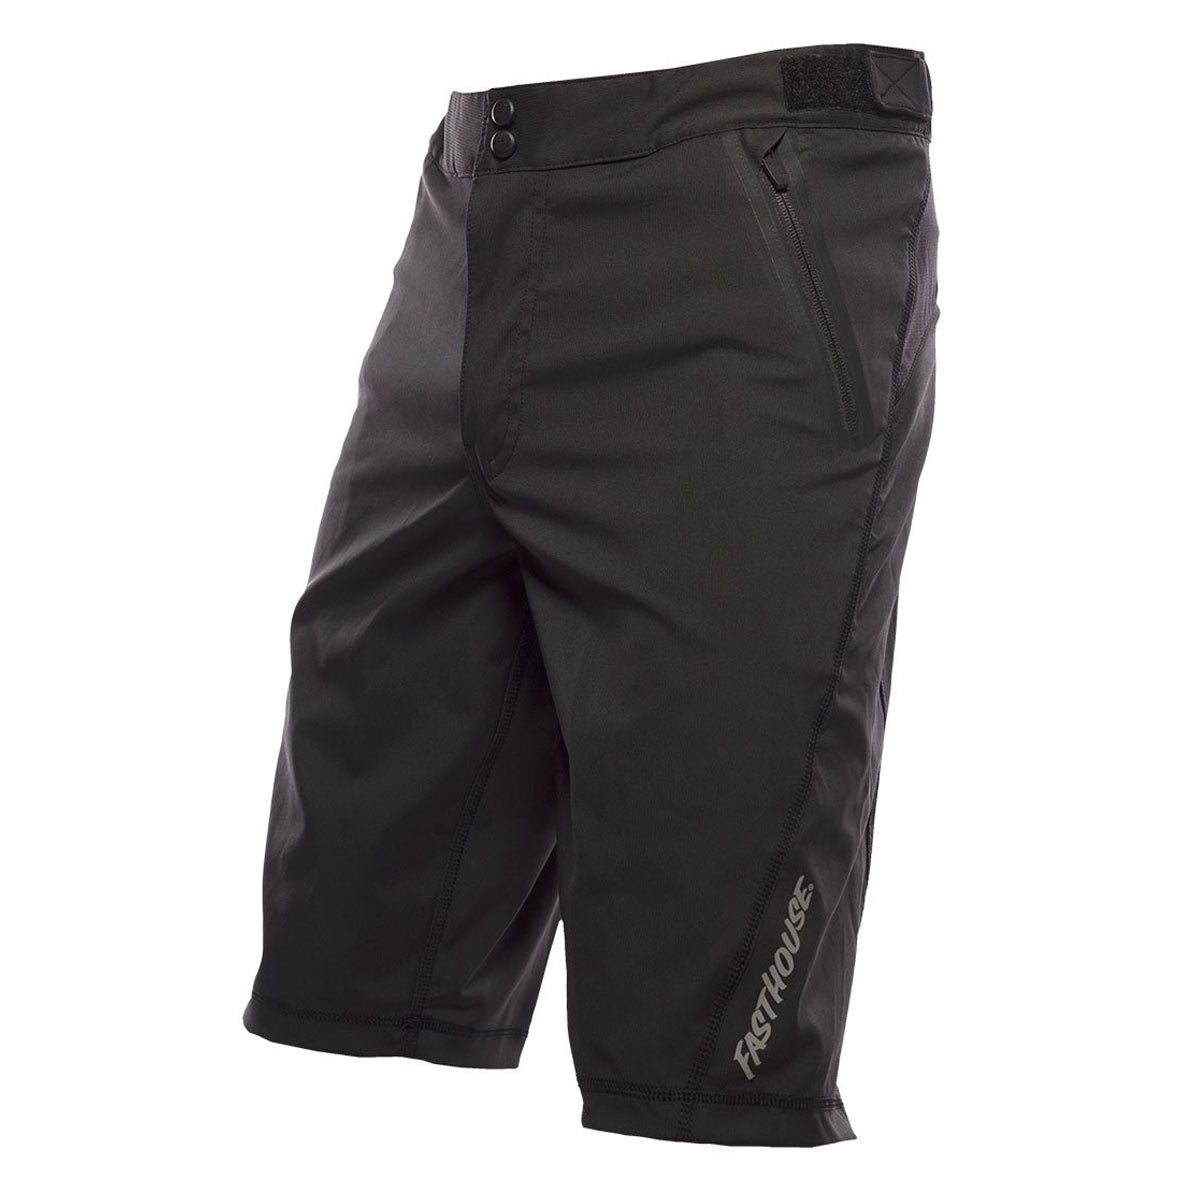 Crossline 2 Short - Black